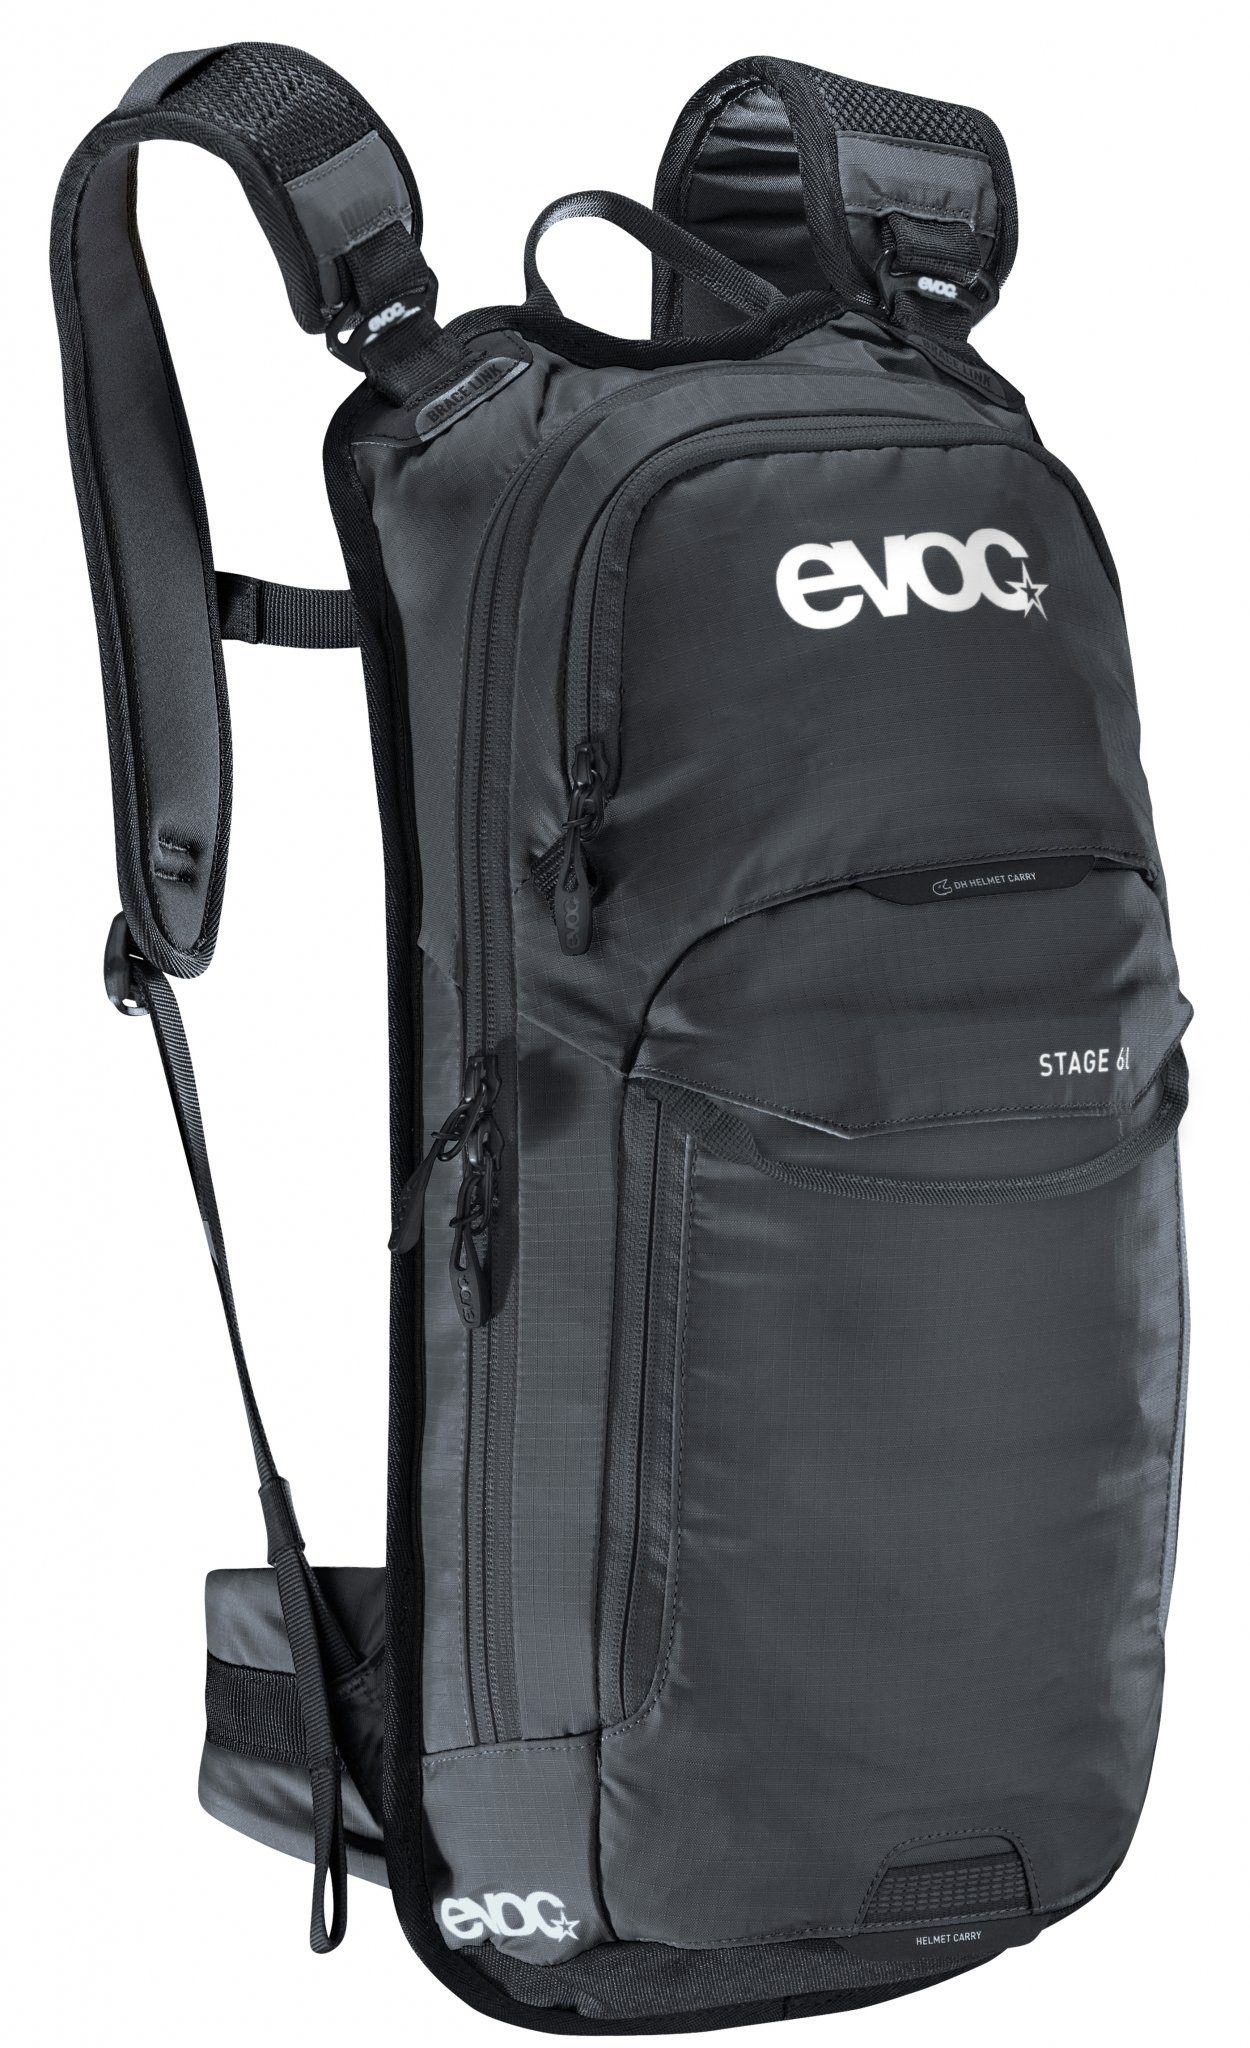 EVOC Rucksack »Stage Backpack 6 L«